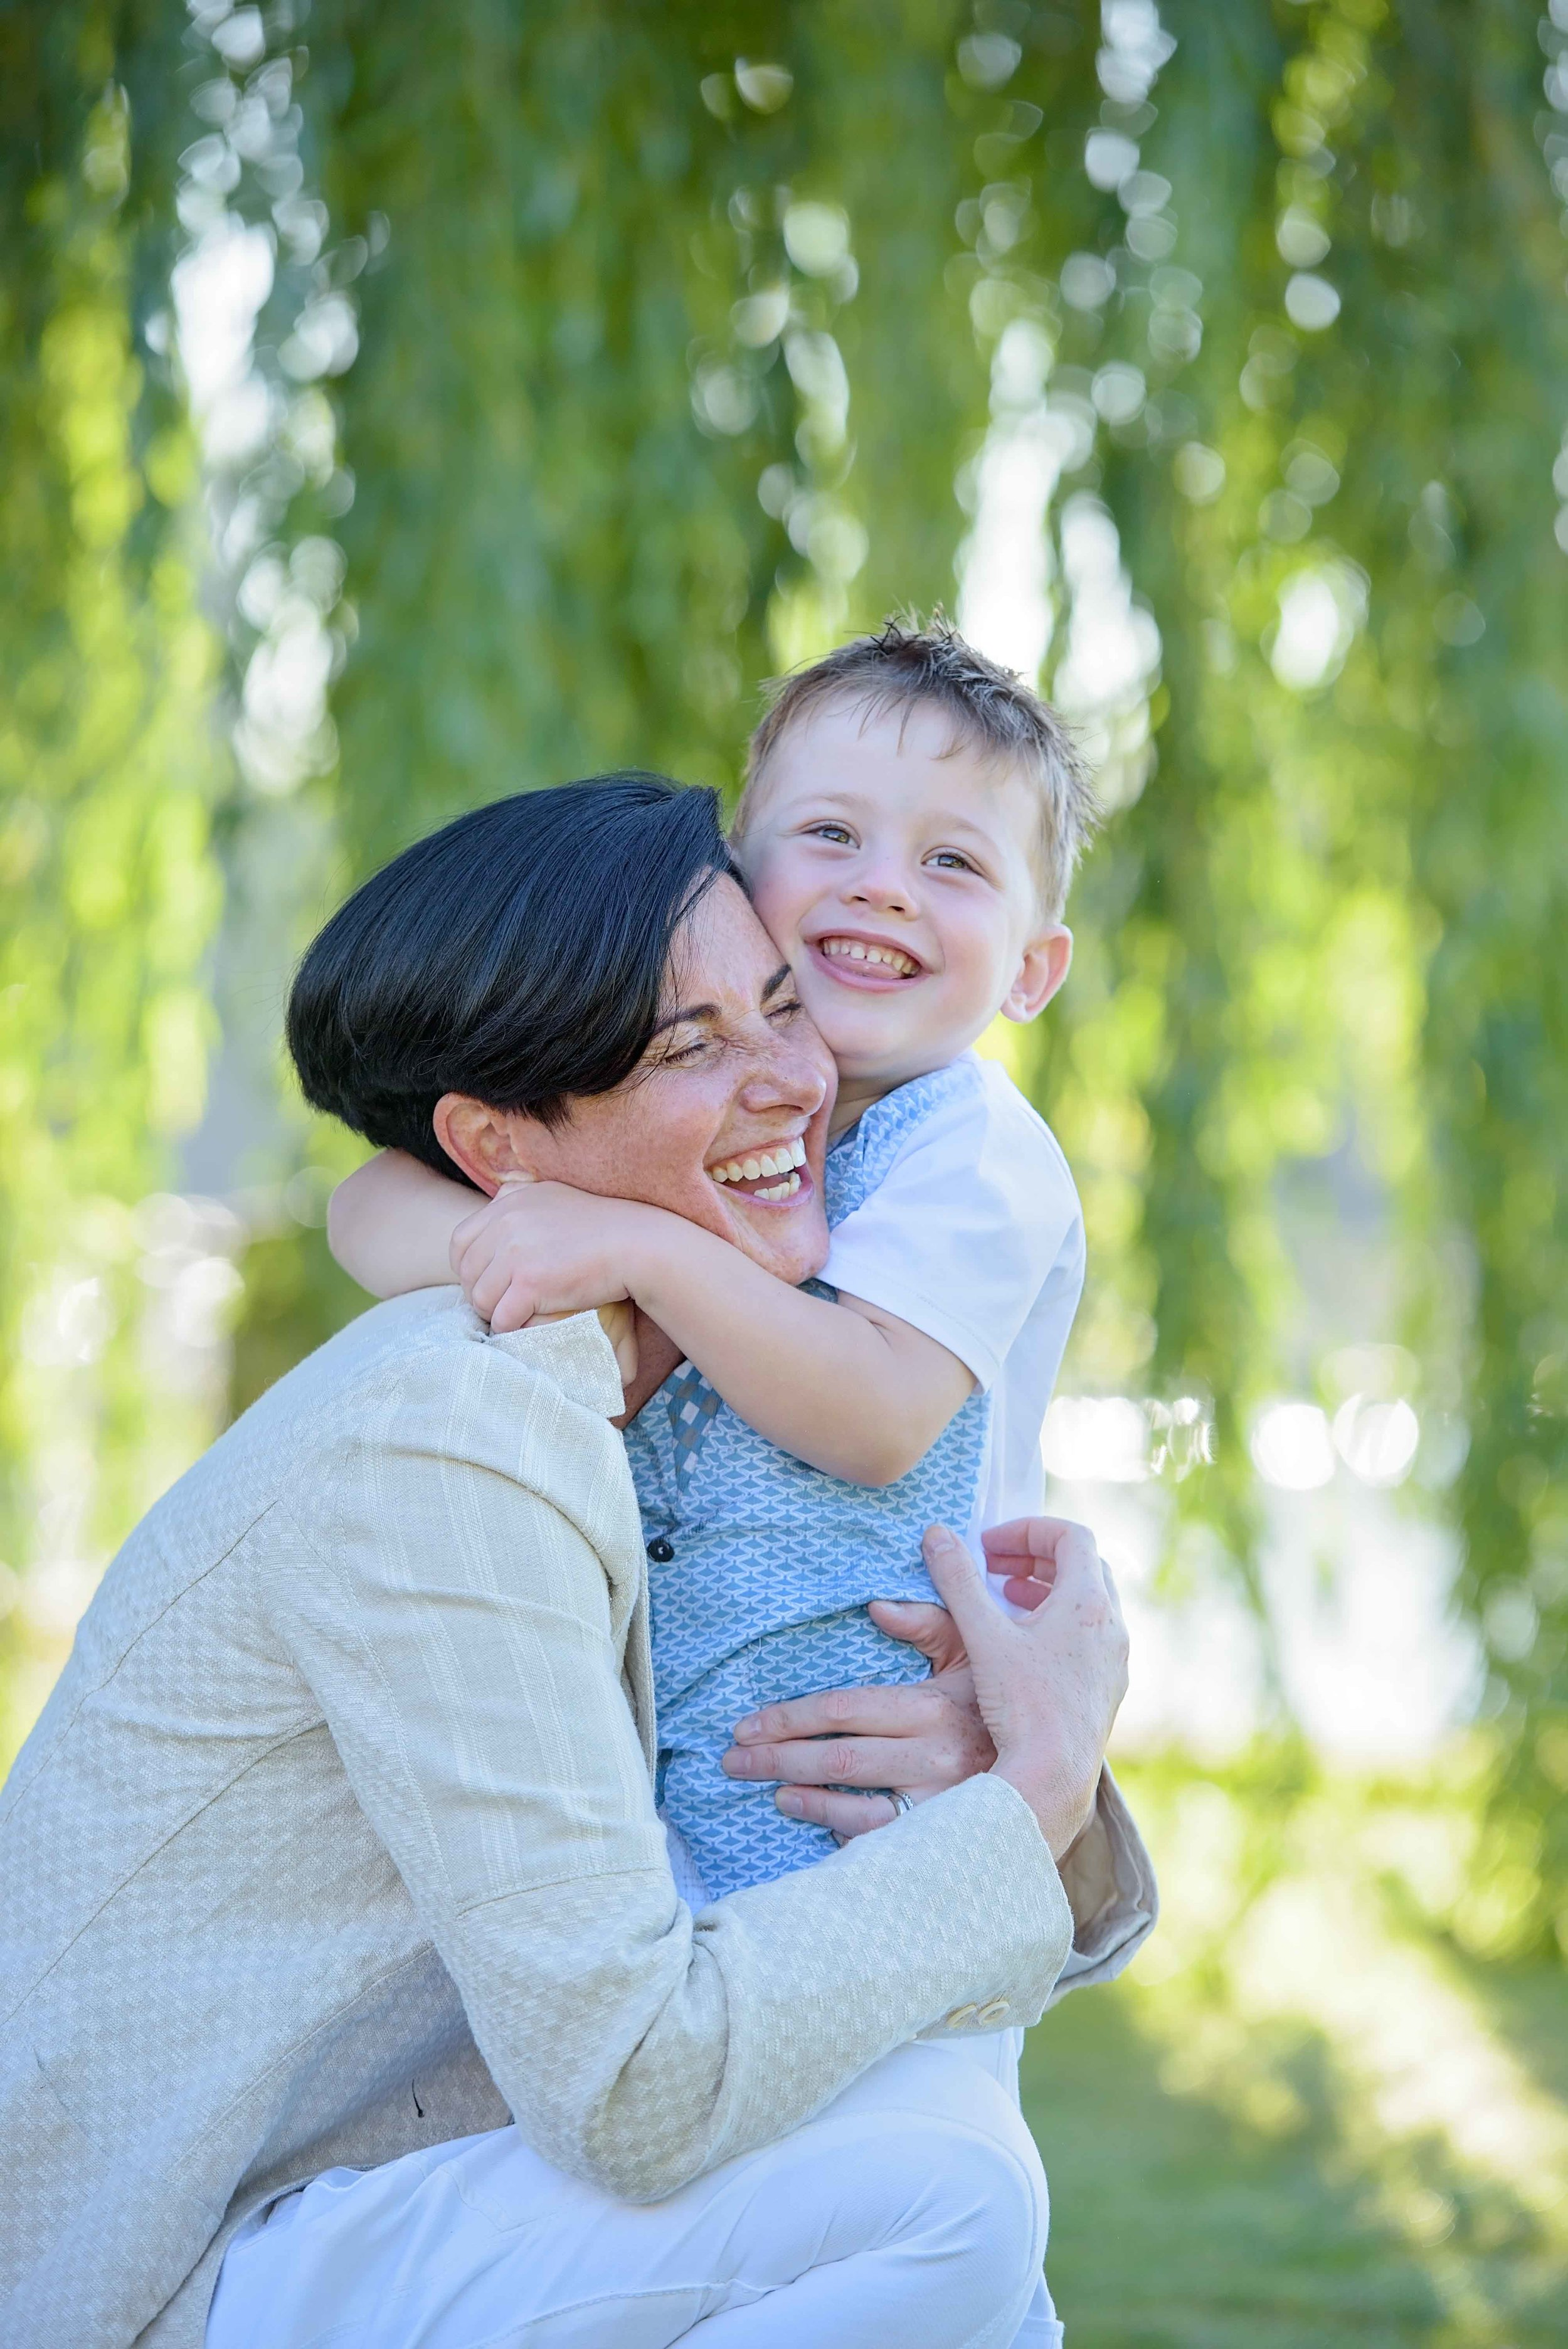 Best family photographer Chiswick W4